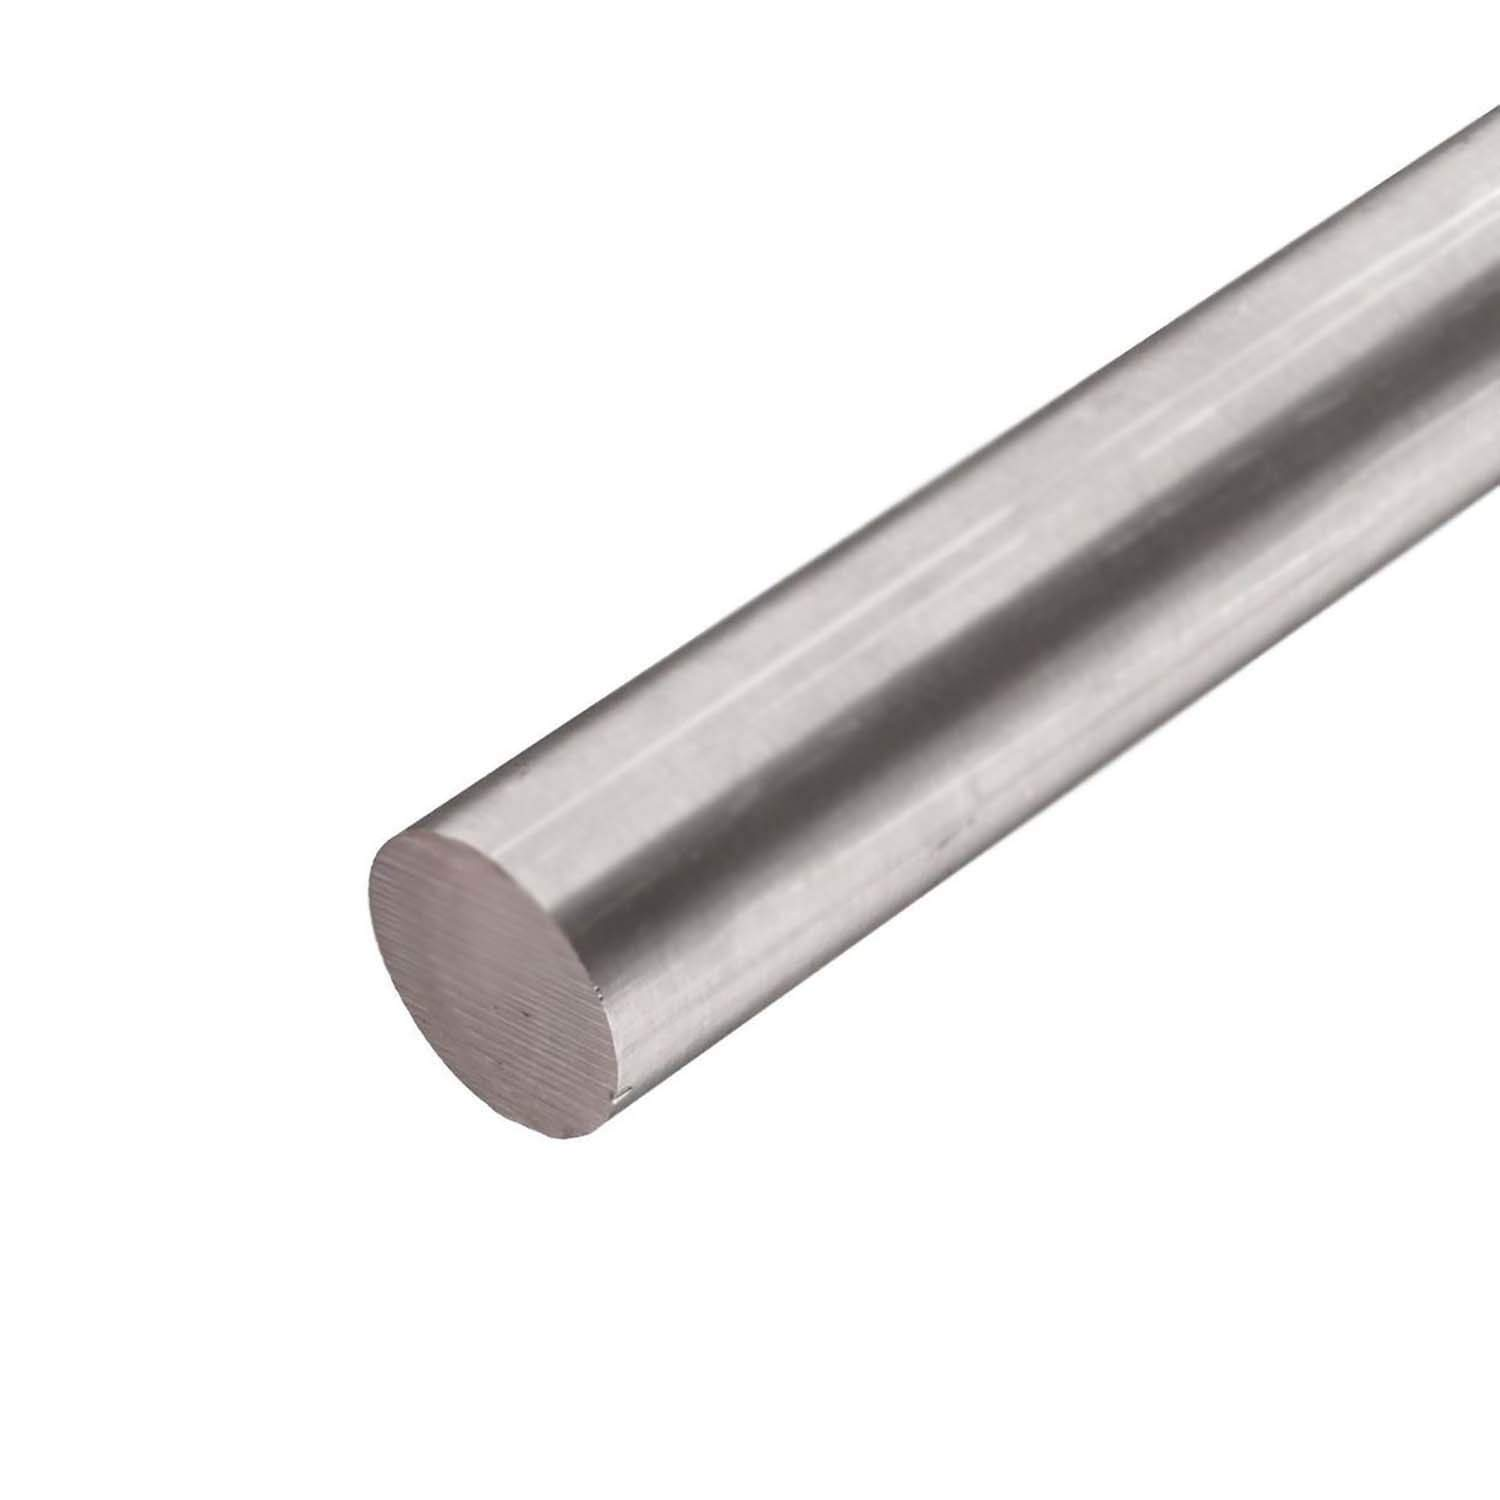 """3//4/"""" X 12/"""" Long 6061 T6511 Aluminum Round Rod In Stock and Ready to Ship Now."""